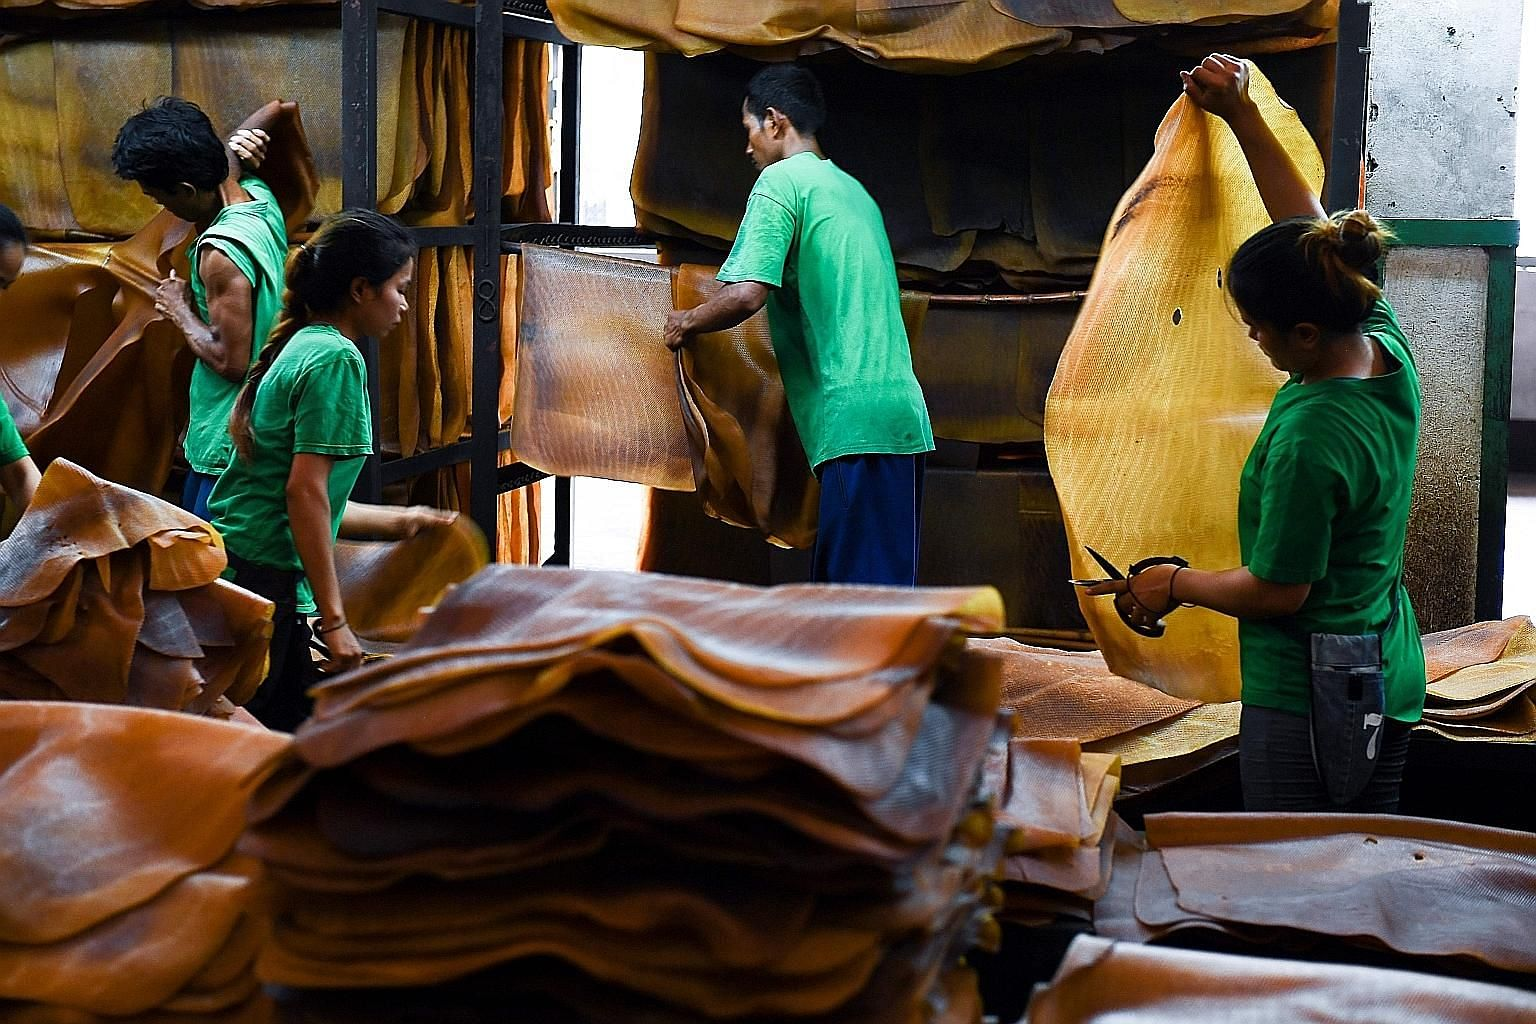 Workers sorting out raw rubber sheets at a factory in Rayong province, Thailand. Thai latex makes everything from tyres and condoms to baby pacifiers and surgical gloves, but the rubber trade is at a crossroads as a bitter dispute between the world's